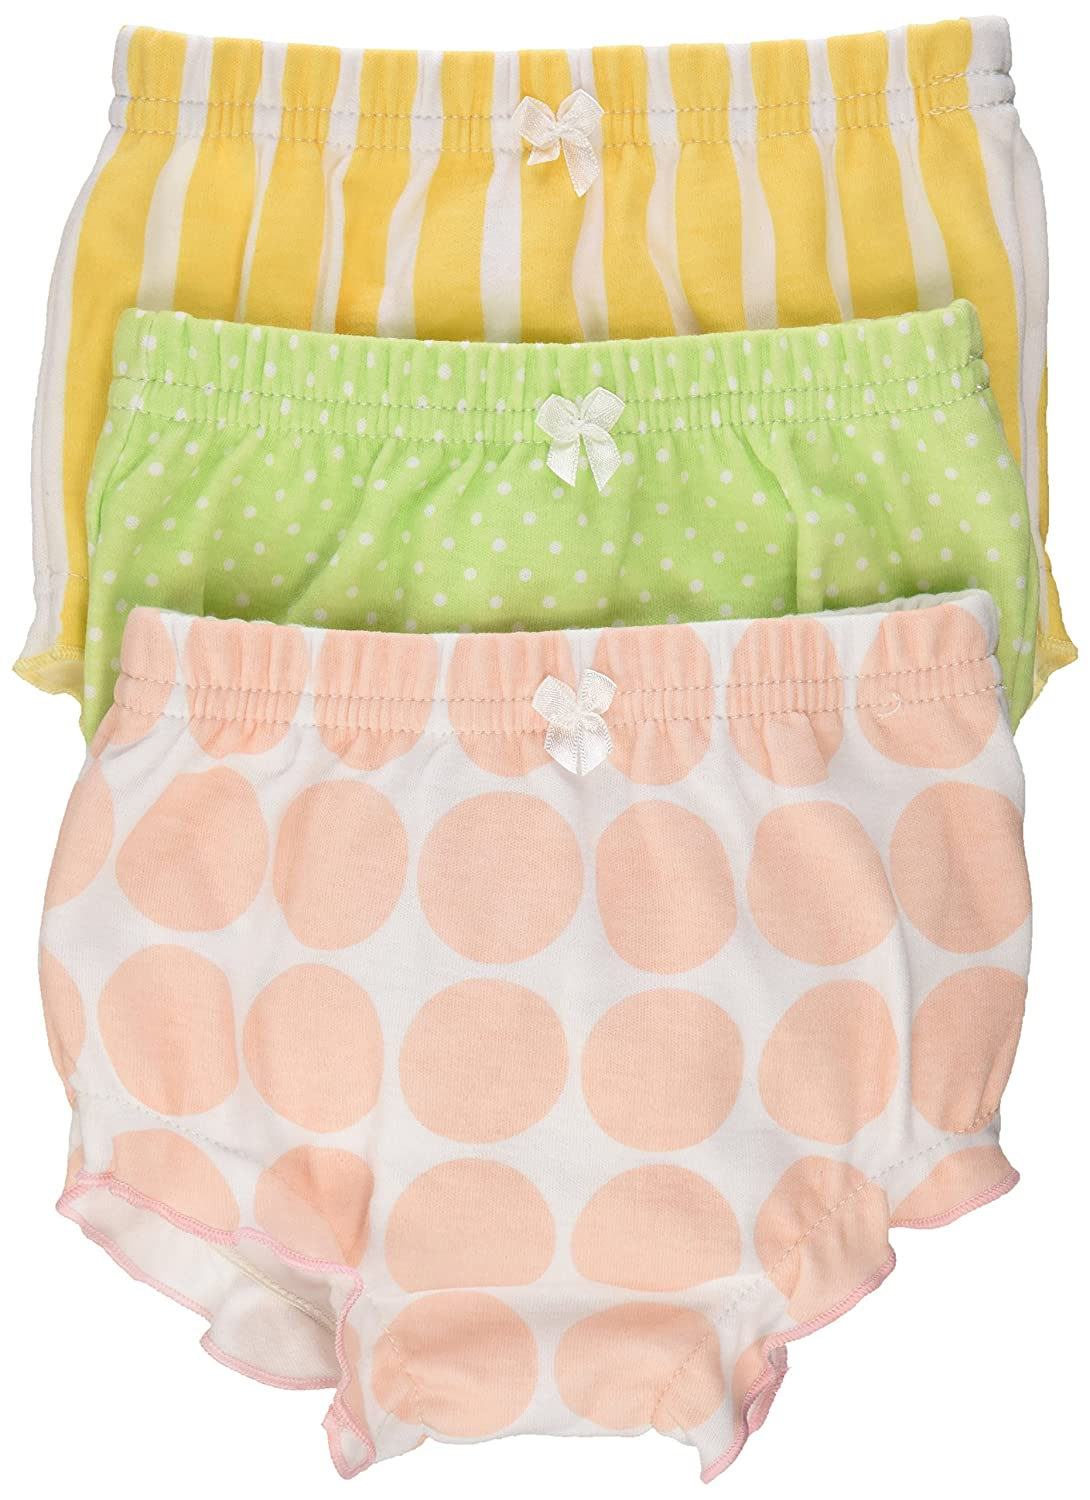 Baby Aspen Baby Bunch OBloomers Three Bloomers for Blooming Bums Multi 0-6 months BA15005NA